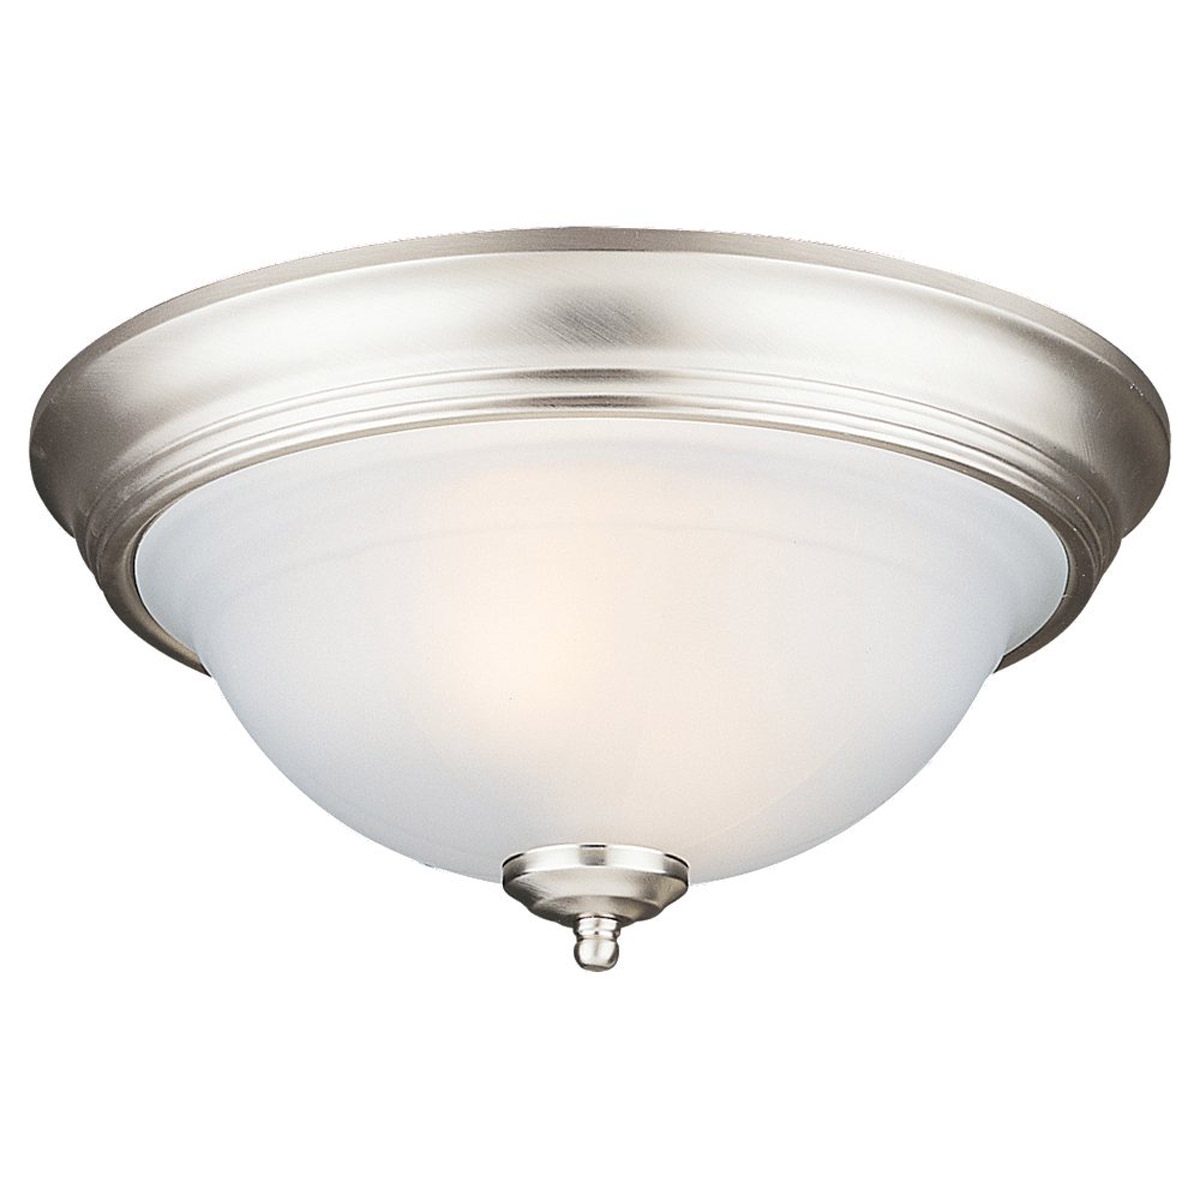 Sea Gull Lighting Canterbury 2 Light Flush Mount in Brushed Nickel 79150BLE-962